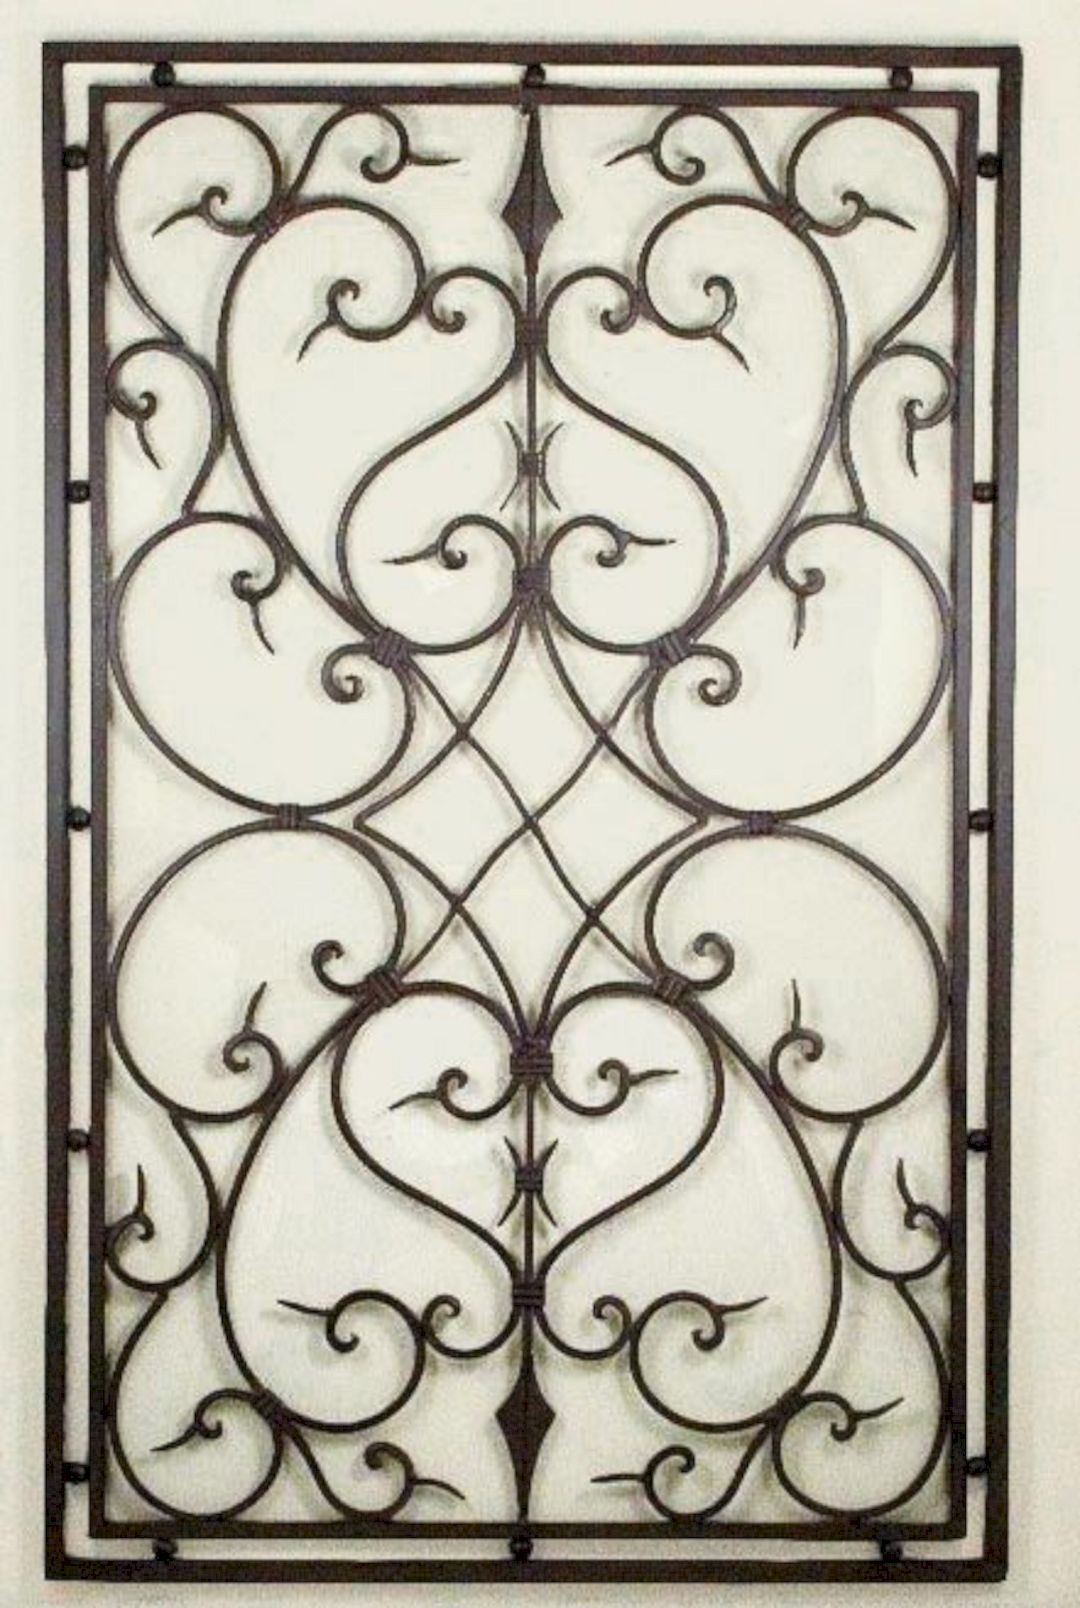 10 Superb Iron Wall Decorations Iron Wall Art Wrought Iron Wall Decor Iron Wall Decor